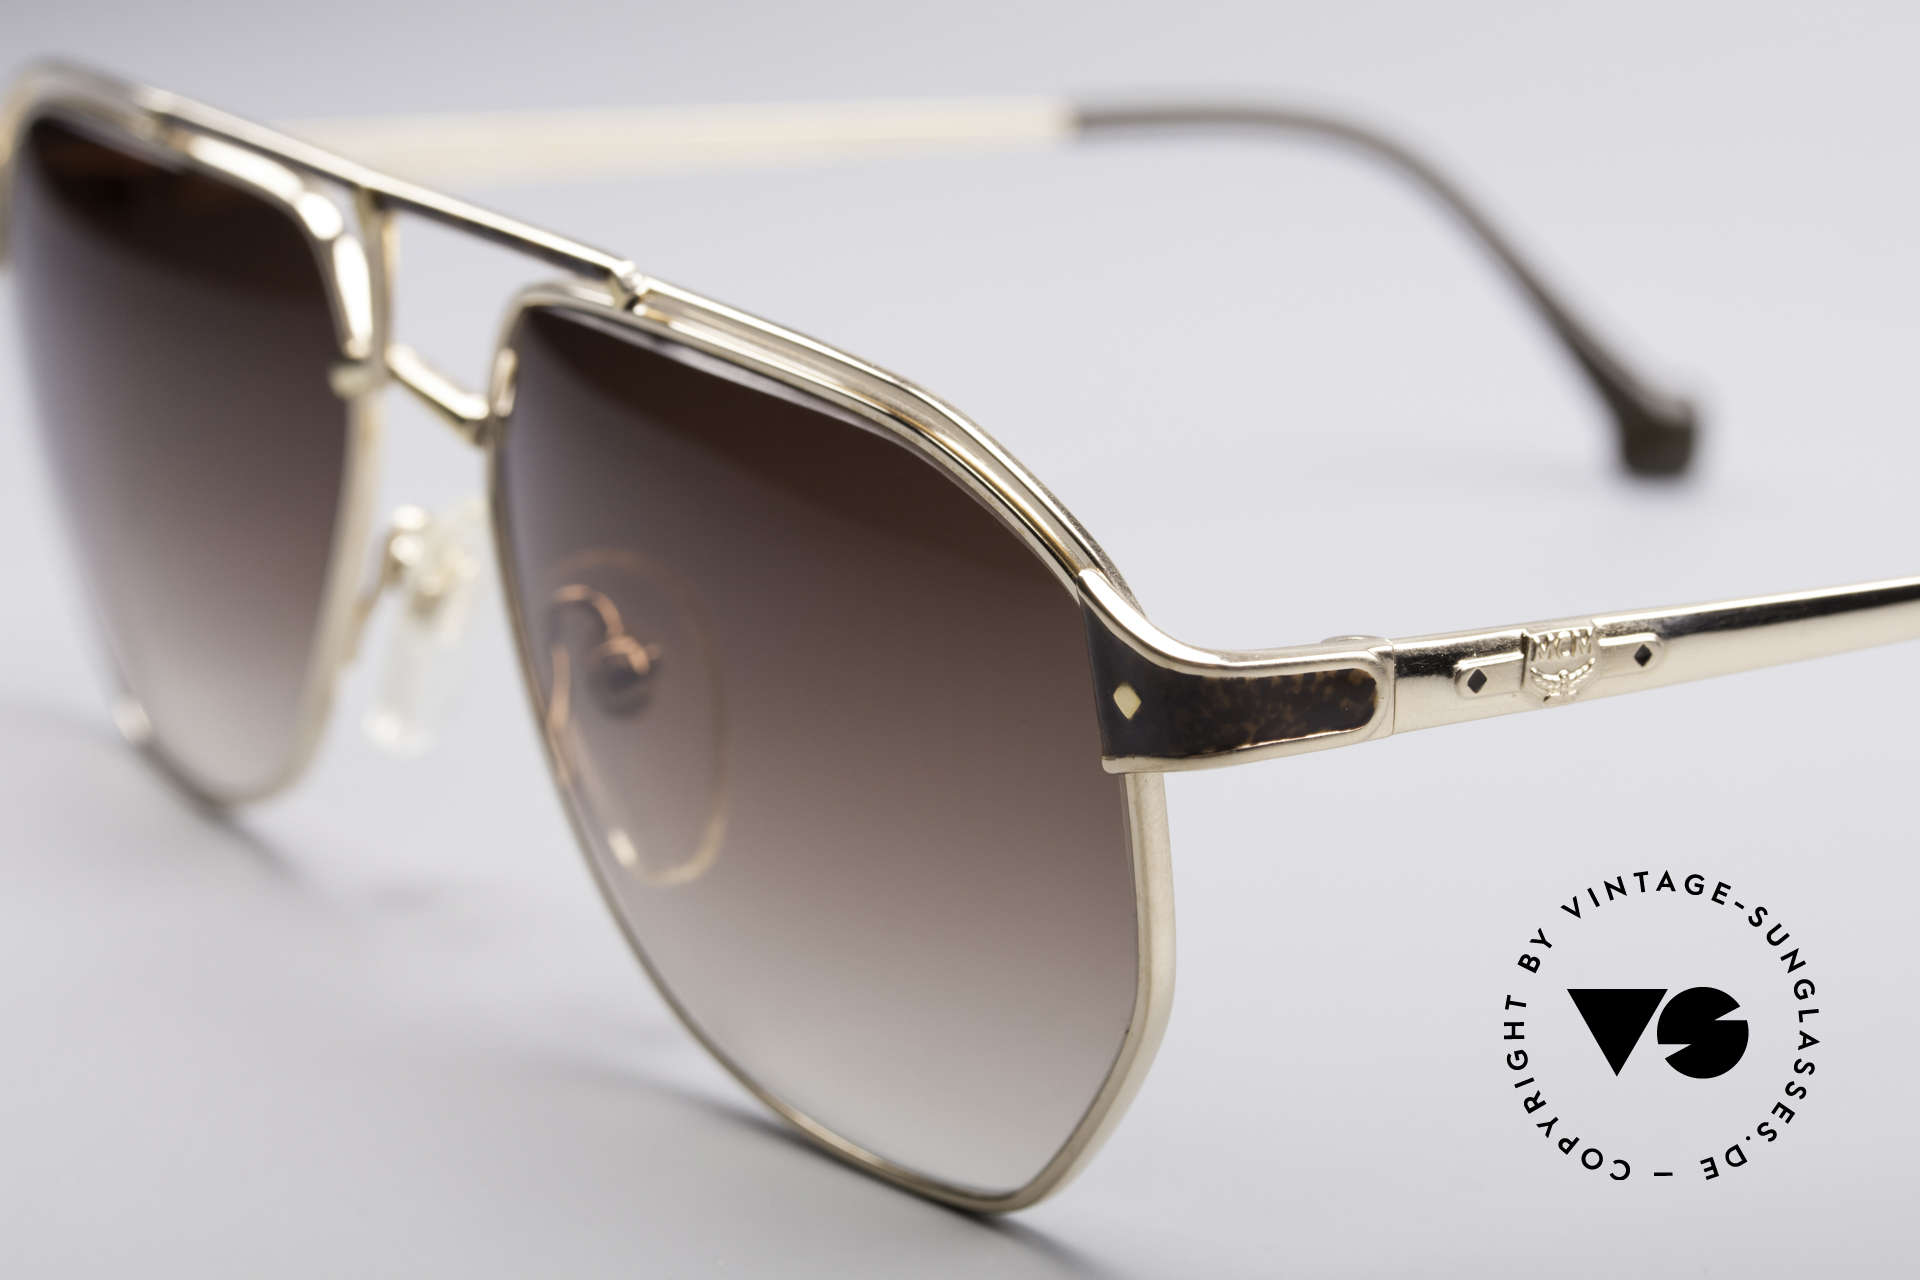 MCM München 6 XL 90's Luxury Shades, precious frame with serial number & 1st class quality, Made for Men